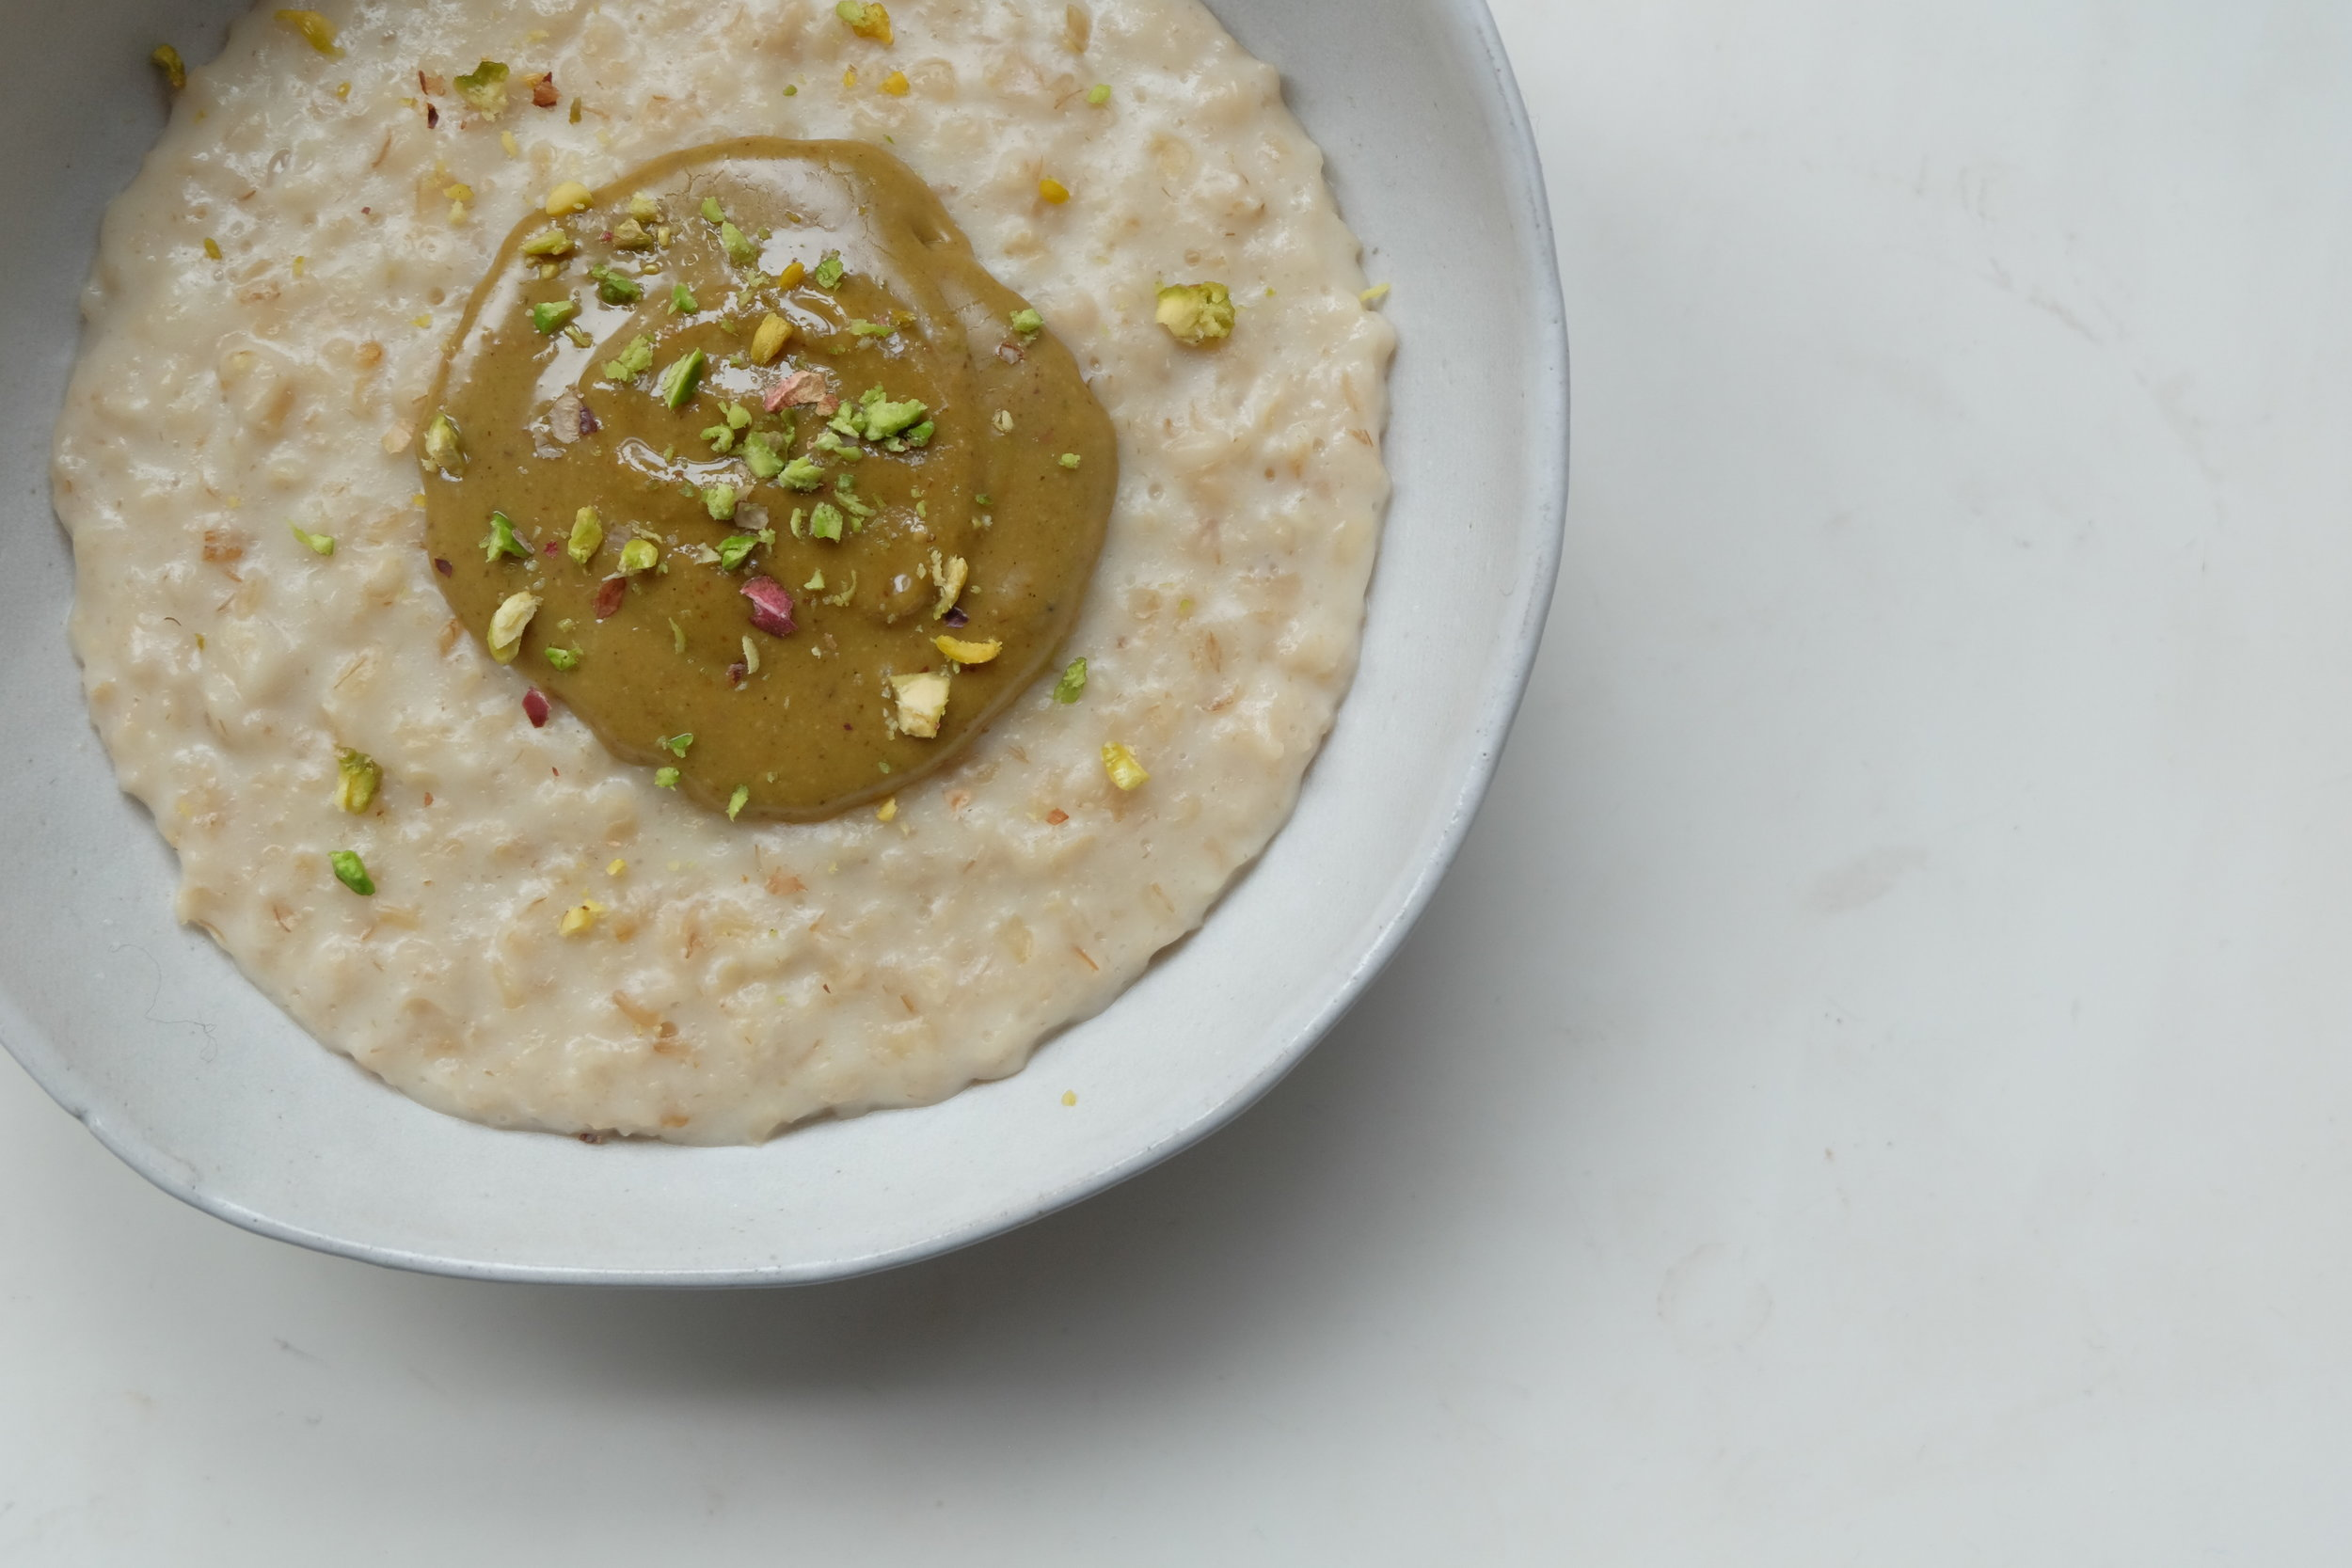 Double Oat Porridge with Homemade Pistachio Butter and Chopped Pistachios